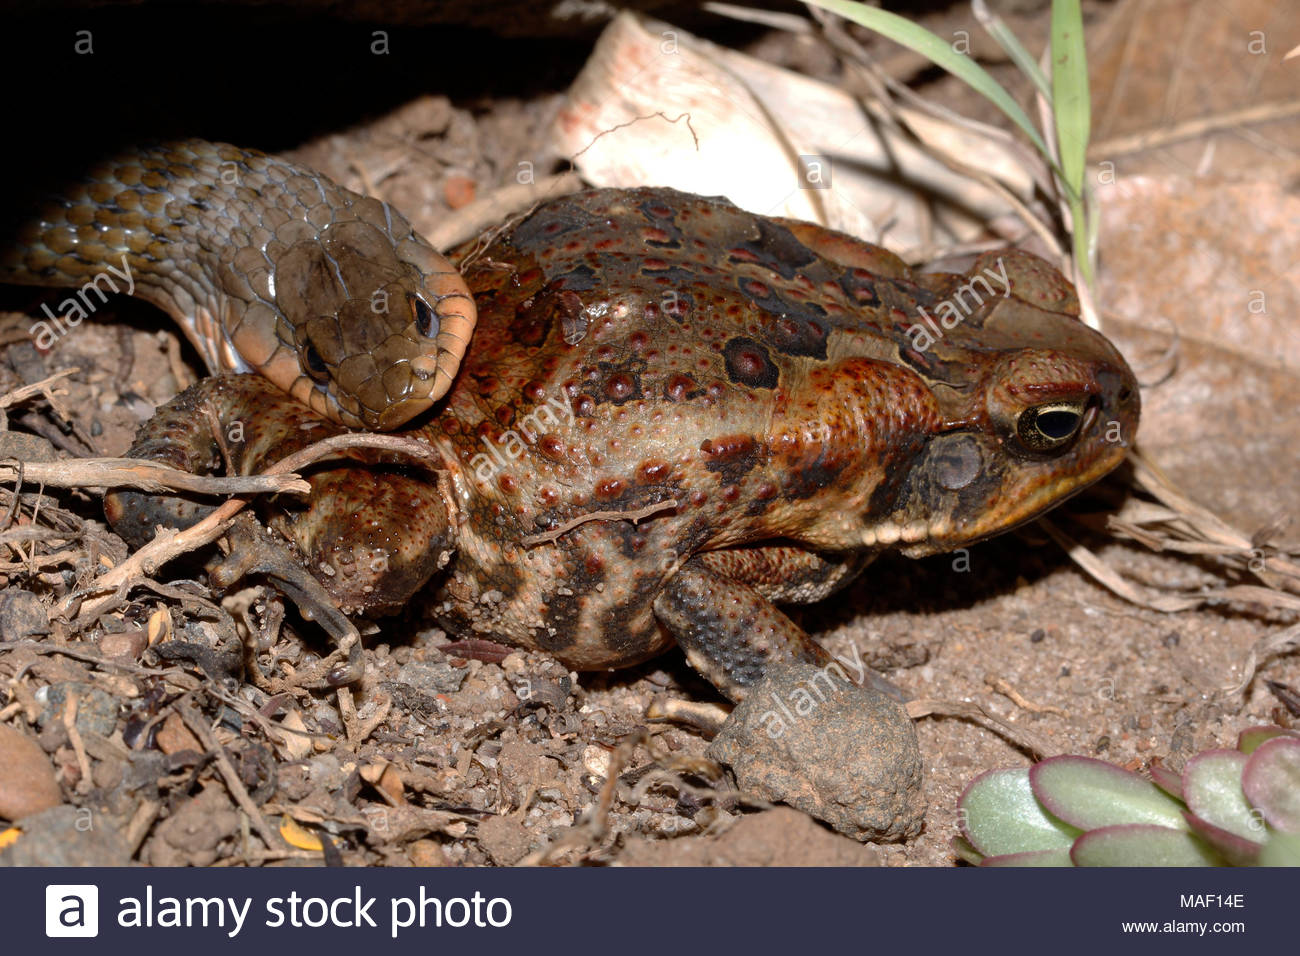 Australian Keel Back (Tropidonophis mairii) trying to eat a large cane toad. Often eating small Cane Toads, these snakes are not effected by the toxin - Stock Image